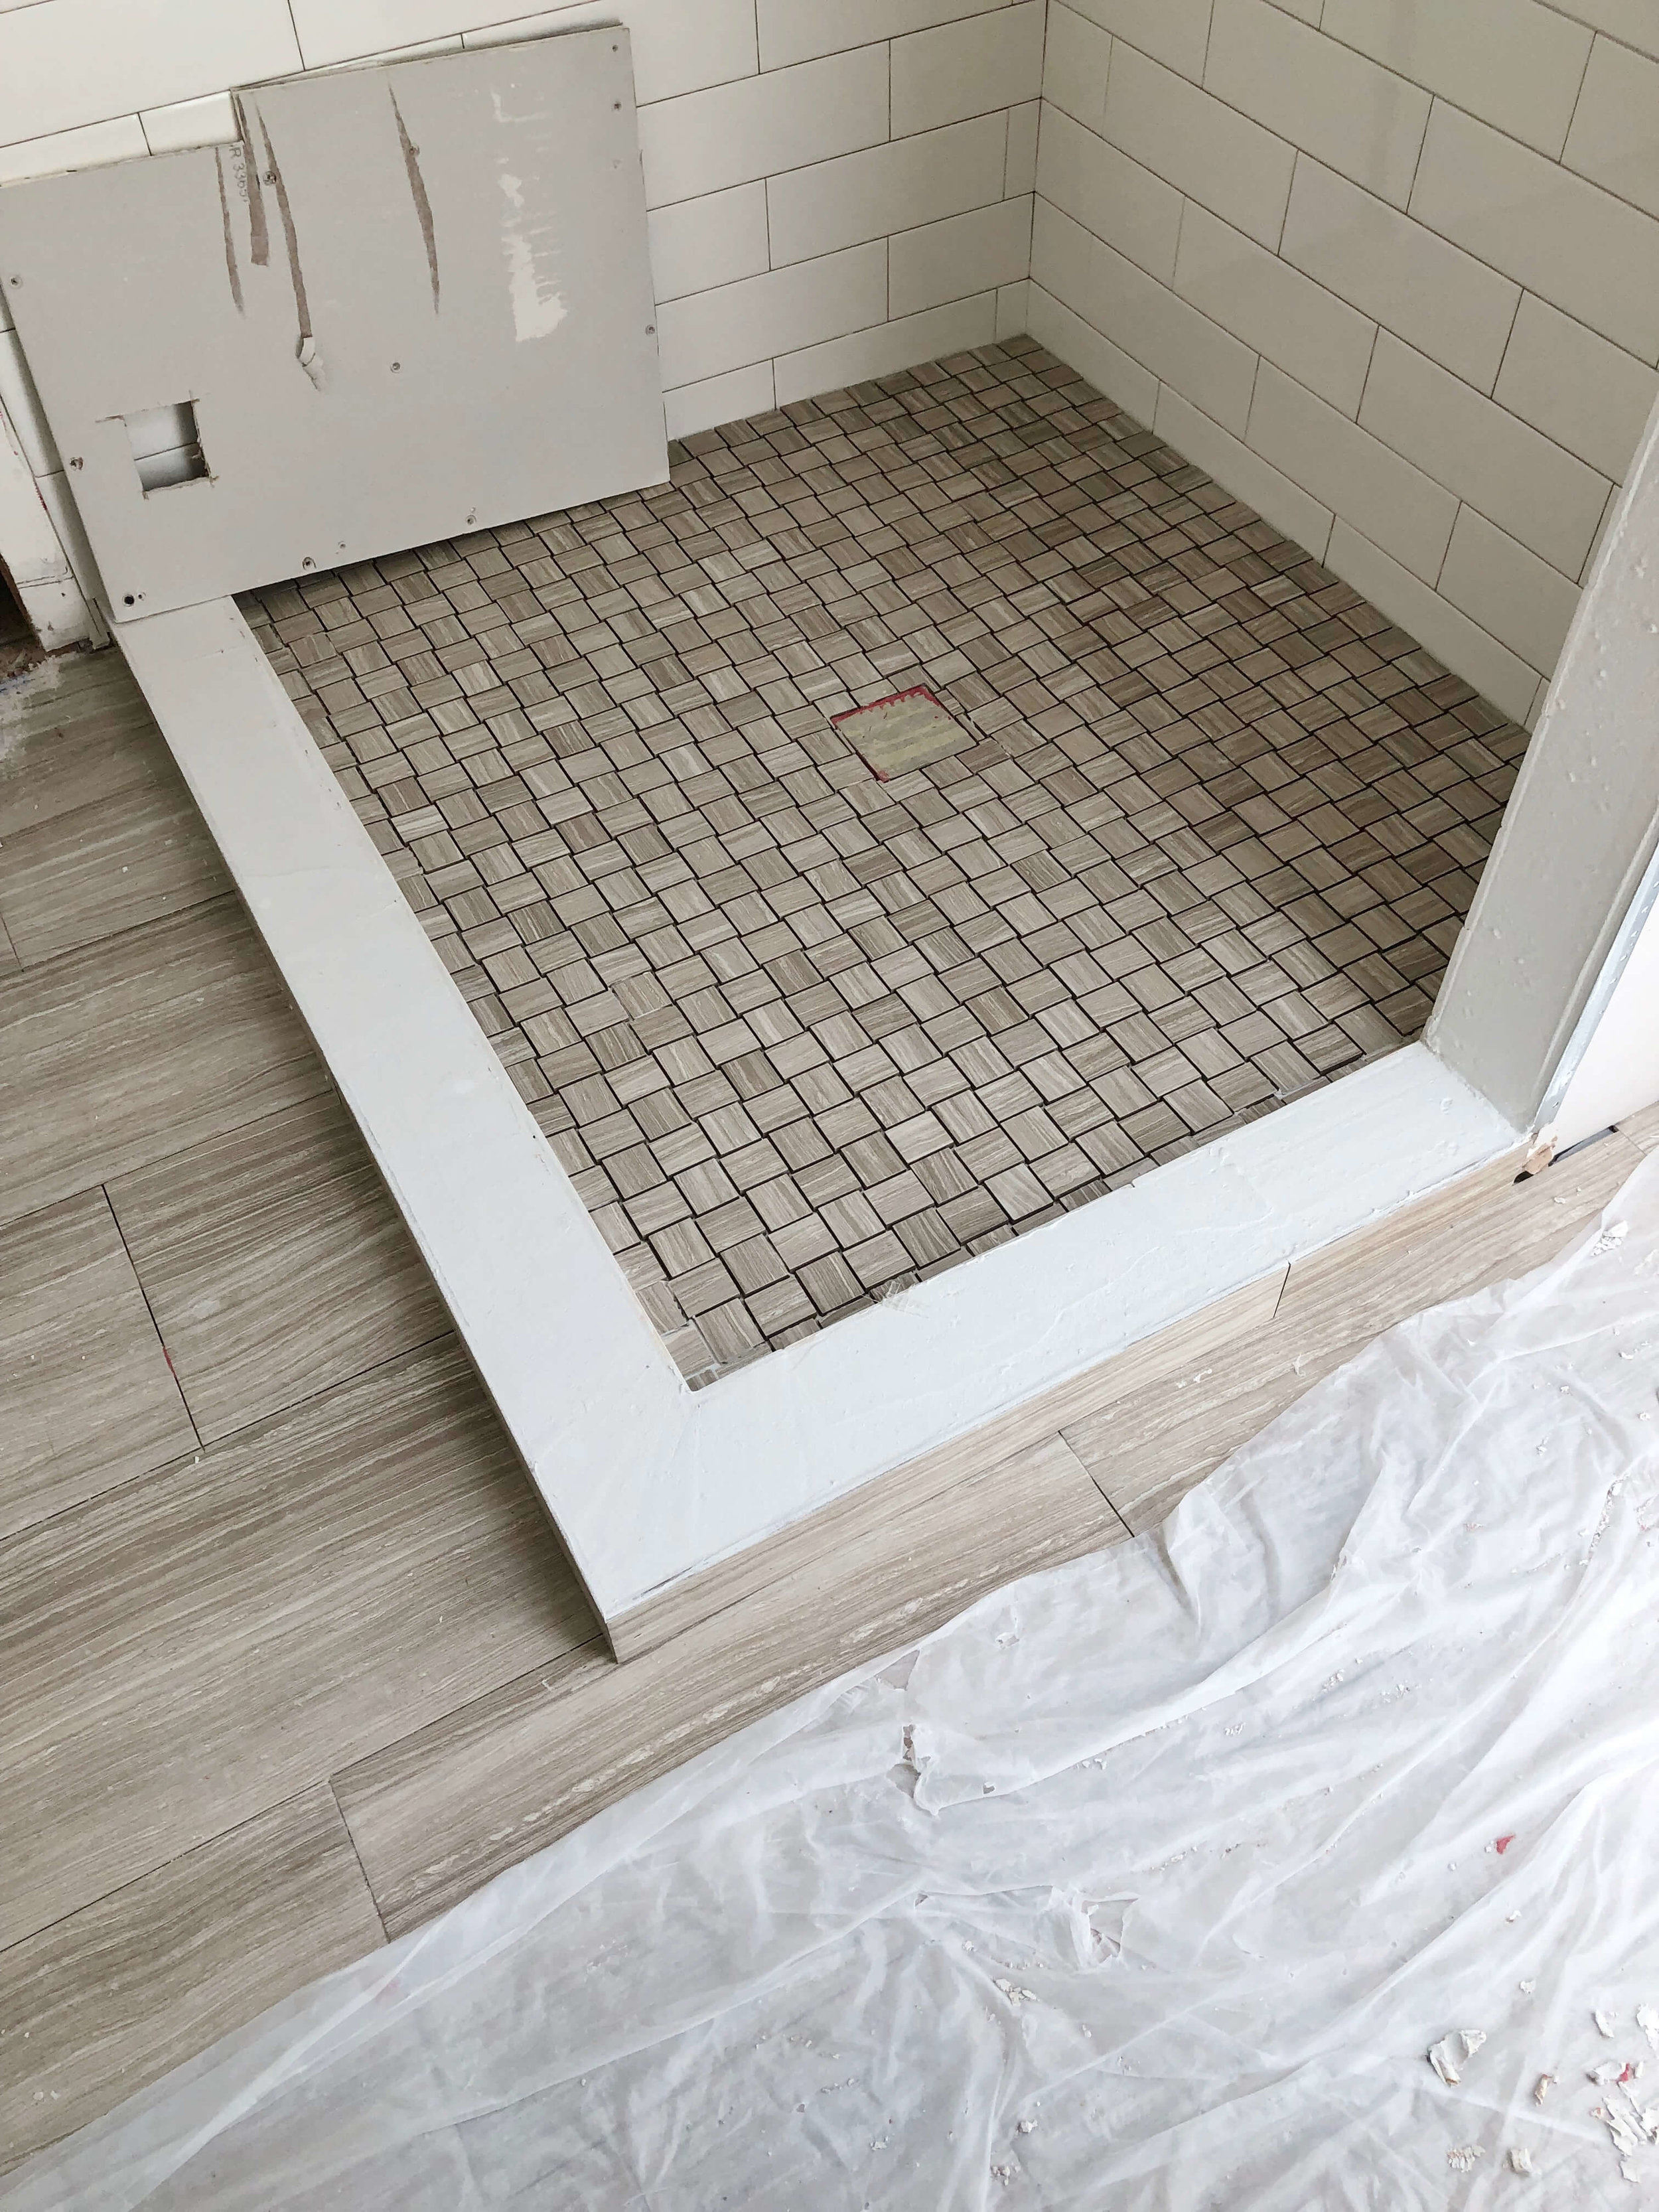 Here's one of my current projects under construction. We were going to do a slab curb with the white quartz material we had for the countertop, but when I saw this, I knew the tile would be a better option. #showerstall #bathroomdesign